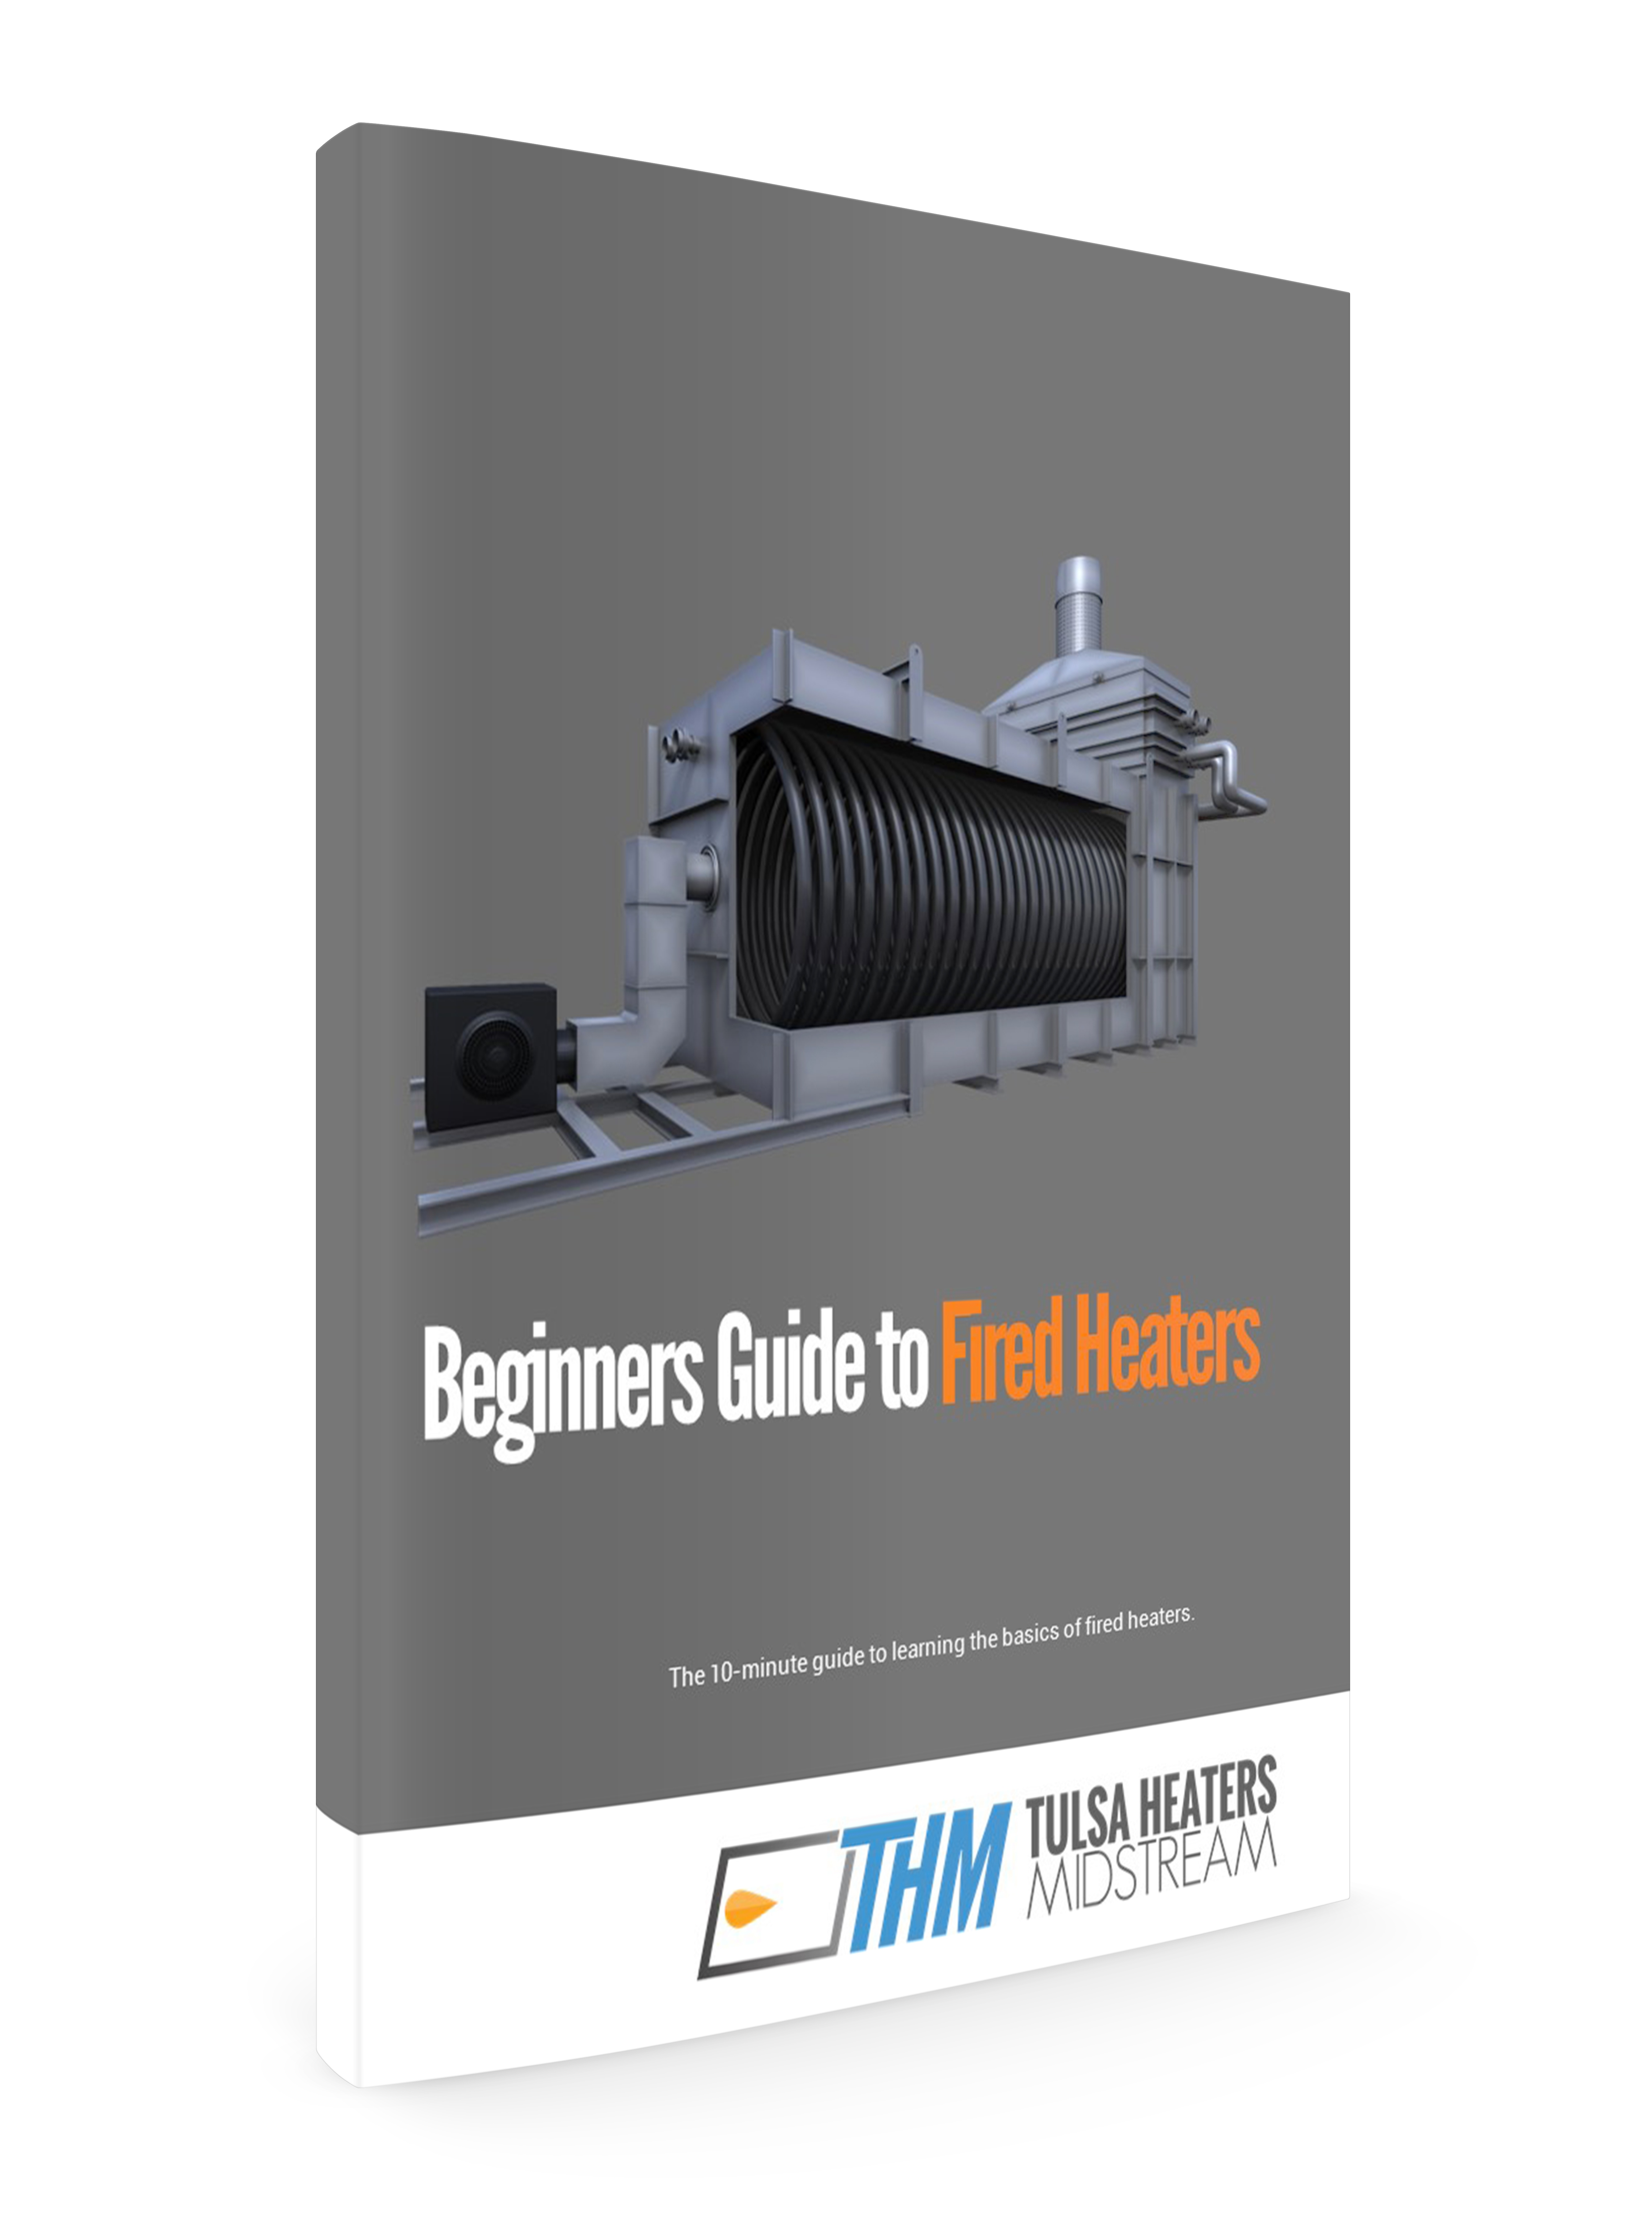 Beginners_Guide_to_Fired_Heaters_Ebook_Mockup.jpg